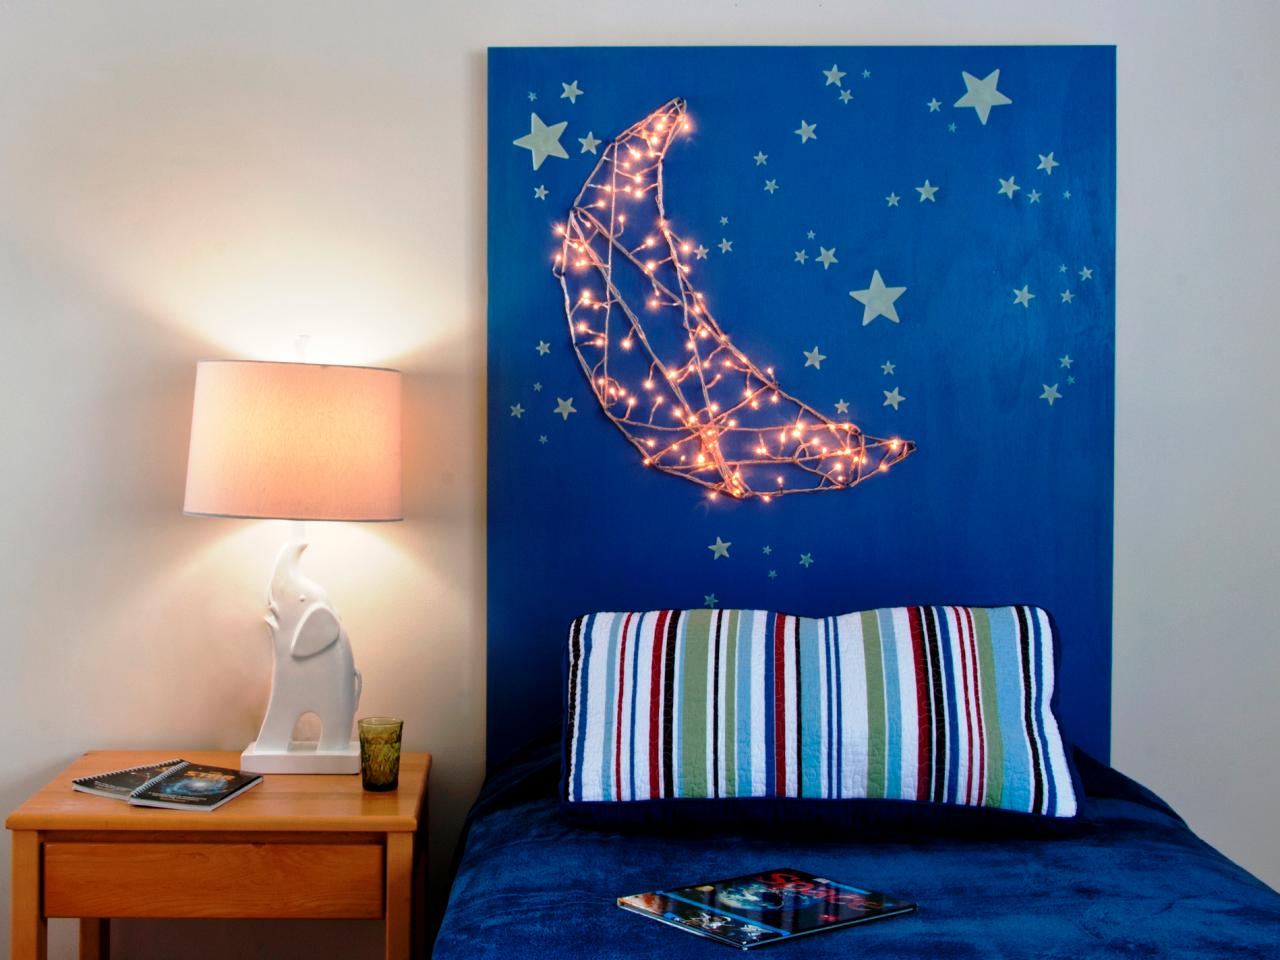 How to Make a Kid s Headboard With Built In Nightlights   how tos   DIY How to Make a Kid s Headboard With Built In Nightlights